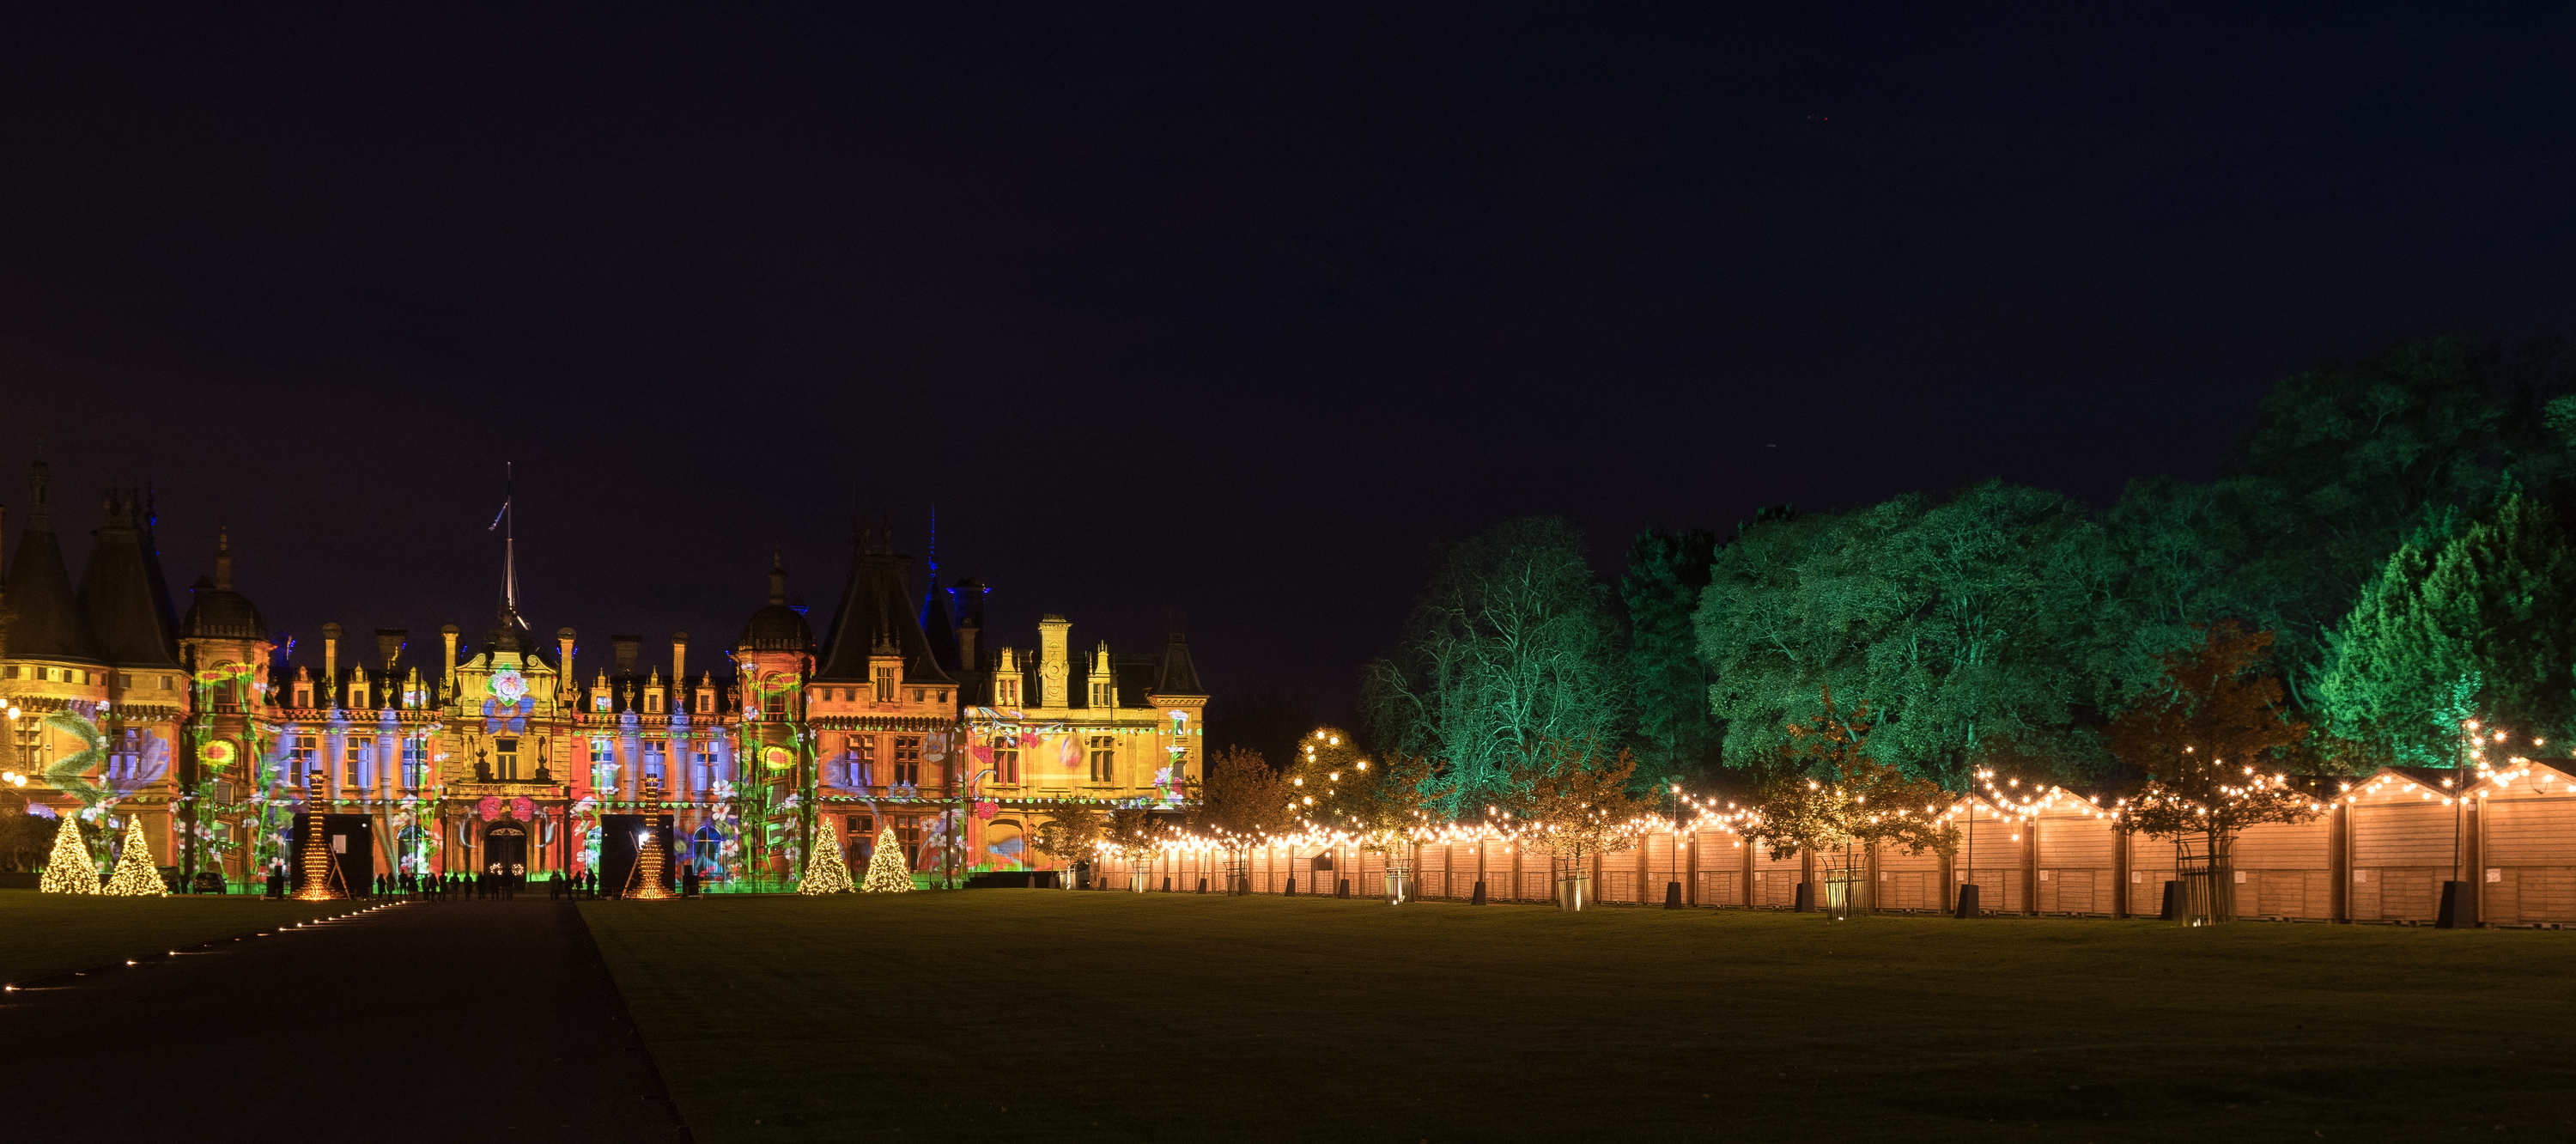 A picture of Waddesdon Manor lit up for Christmas